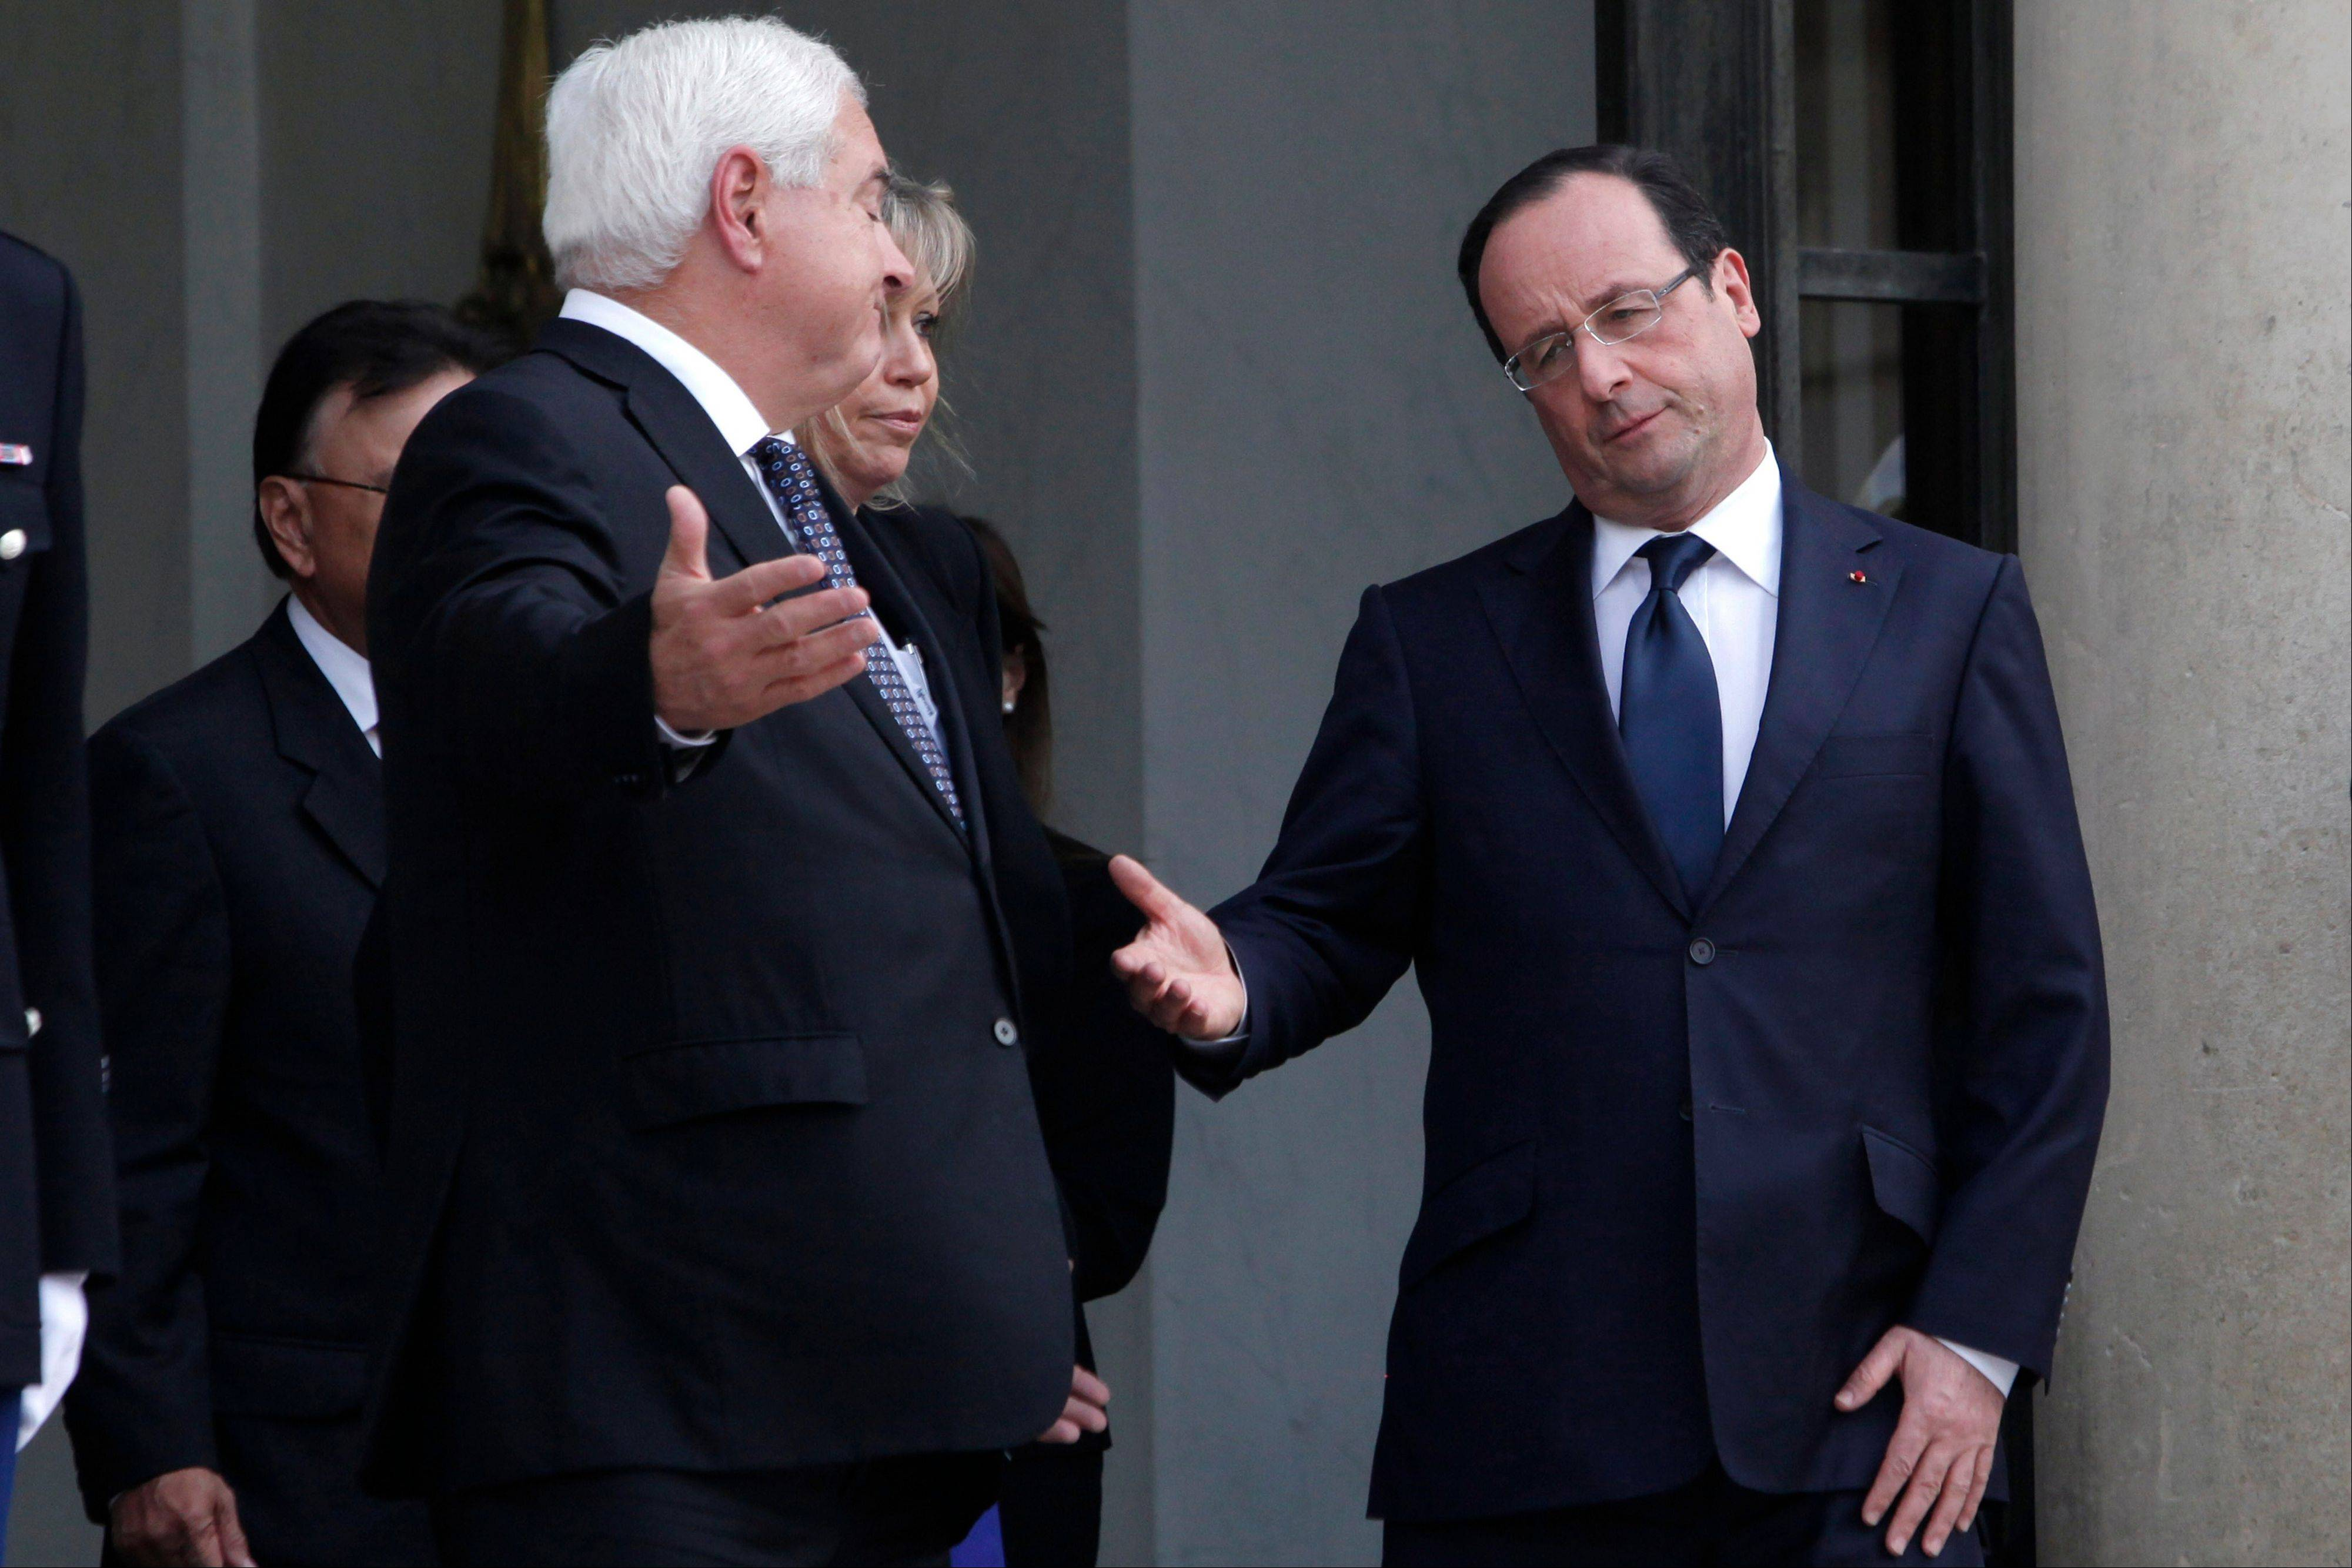 France�s President Francois Hollande, right, and his Panamanian counterpart Ricardo Martinelli, left, gesture at the end of a meeting Friday, at the Elysee Palace, in Paris.